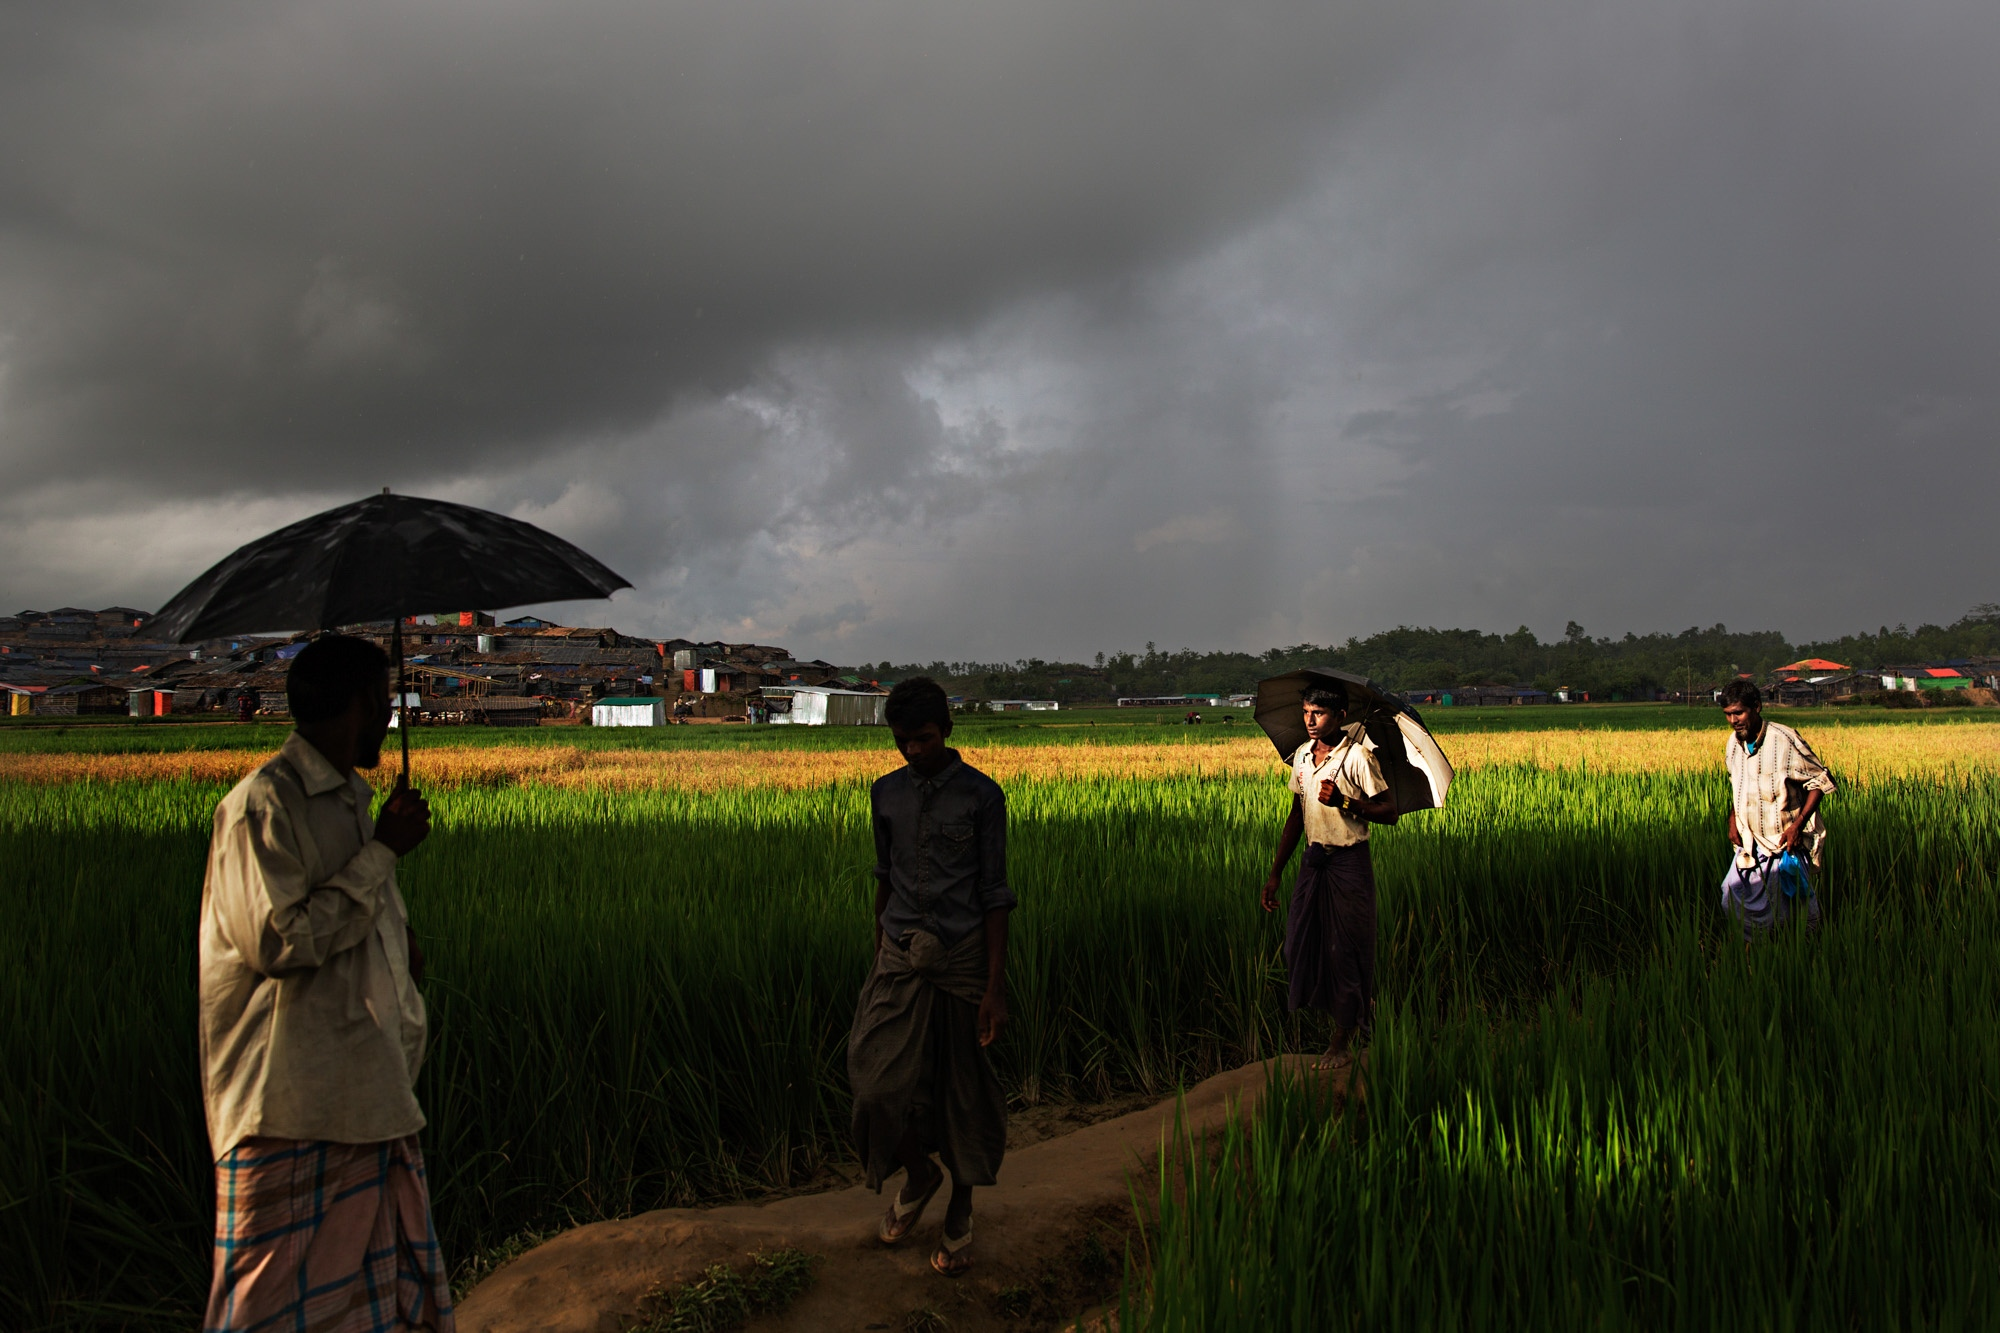 Rohingya men make their way through a flash rainstorm in Bagoha camp. Monsoon rains are a real threat due to the high density of refugees and many diseases and mosquito born illnesses that become prevalent in the damp, humid weather.